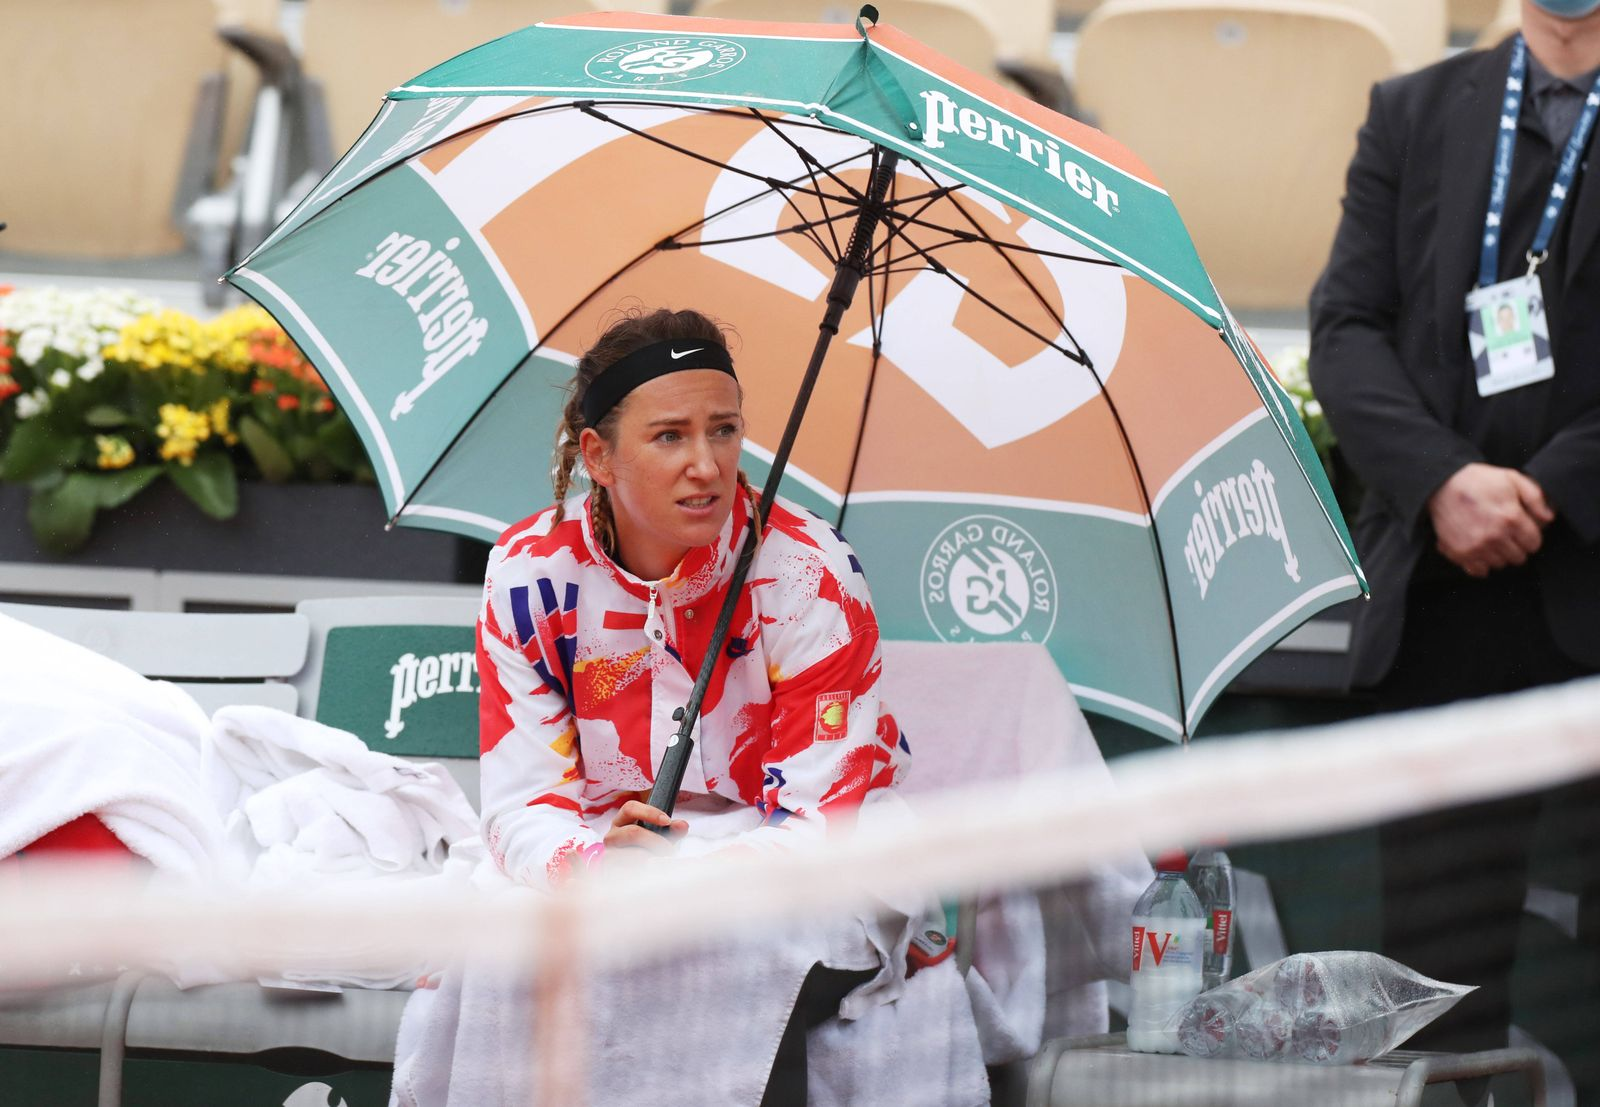 (200927) -- PARIS, Sept. 27, 2020 -- Victoria Azarenka of Belarus waits during a pause because of the rain in the women